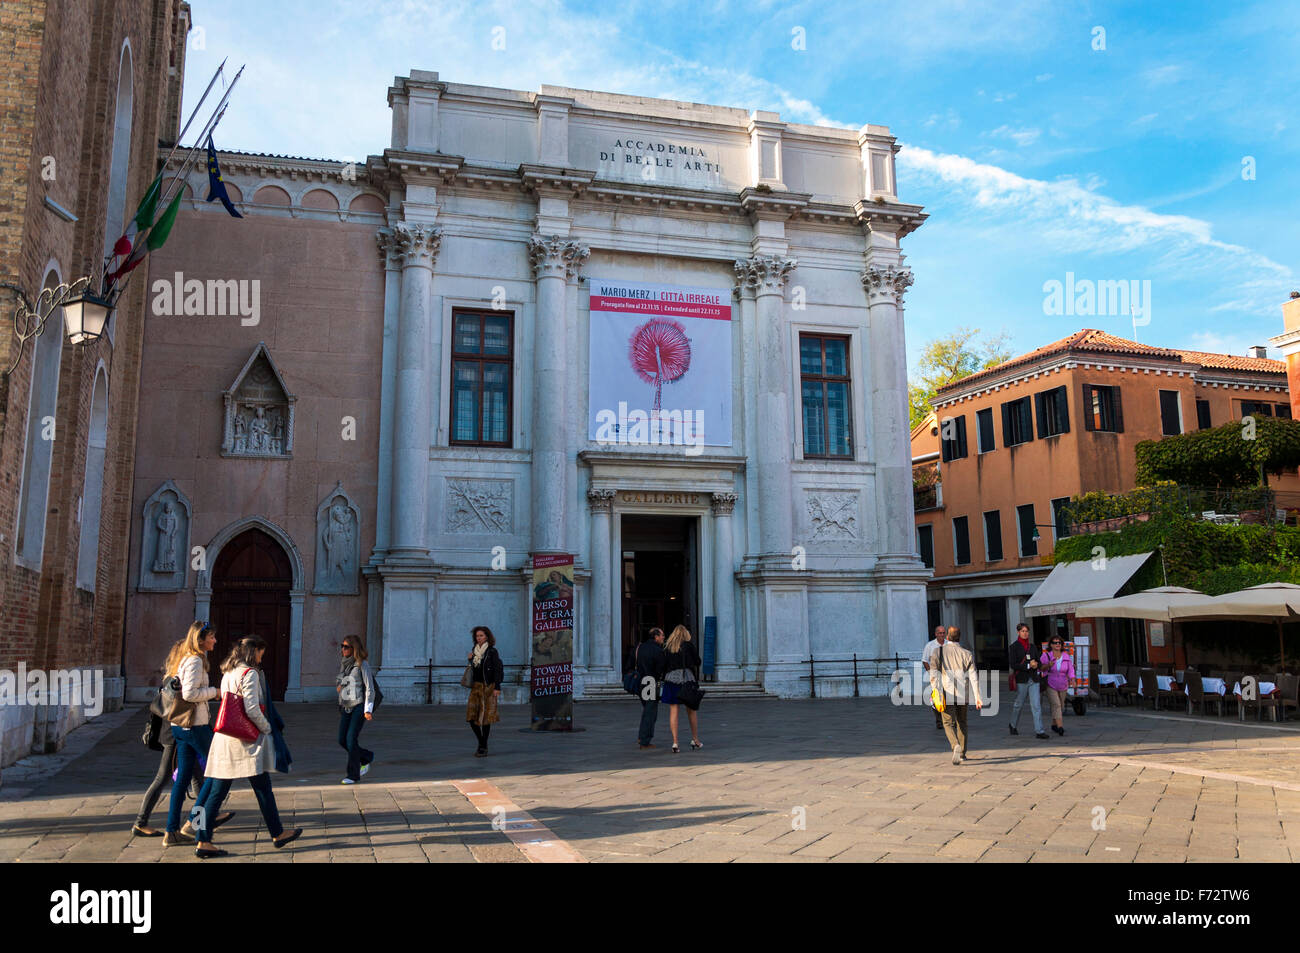 Accademia art gallery in Venice, Italy. frontage front entrance - Stock Image